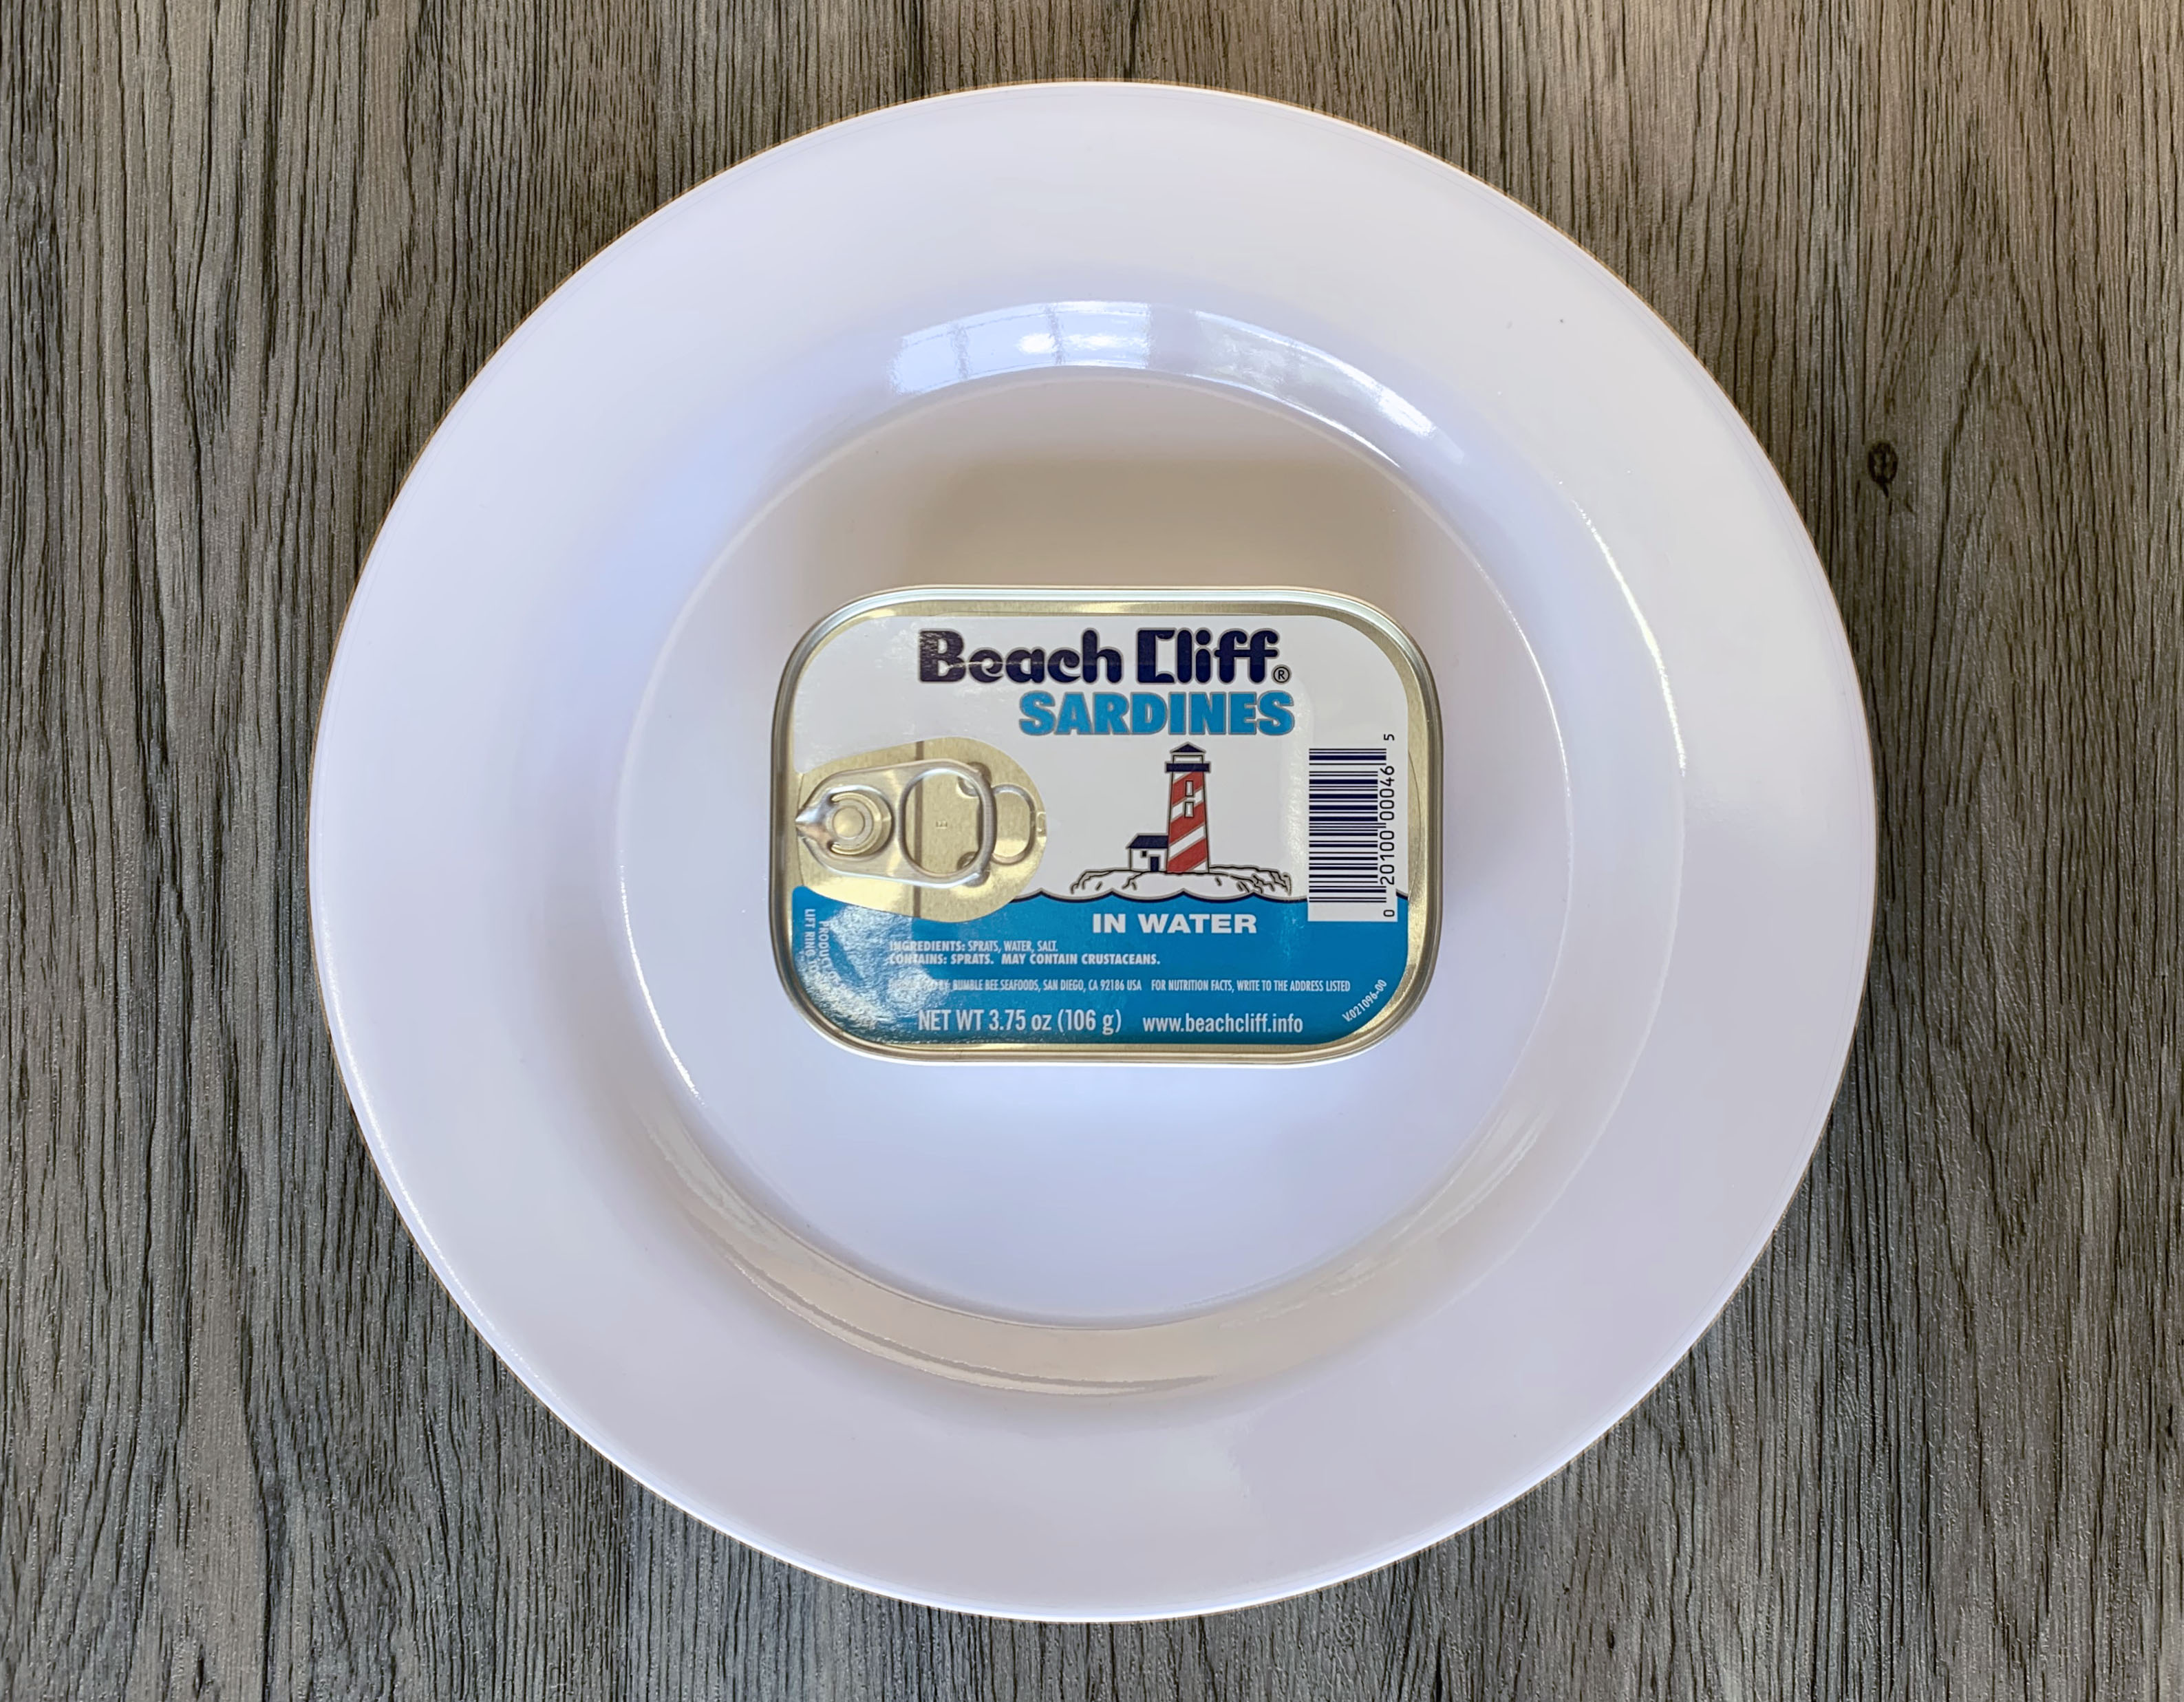 Read Beach Cliff Sardines in Water Review